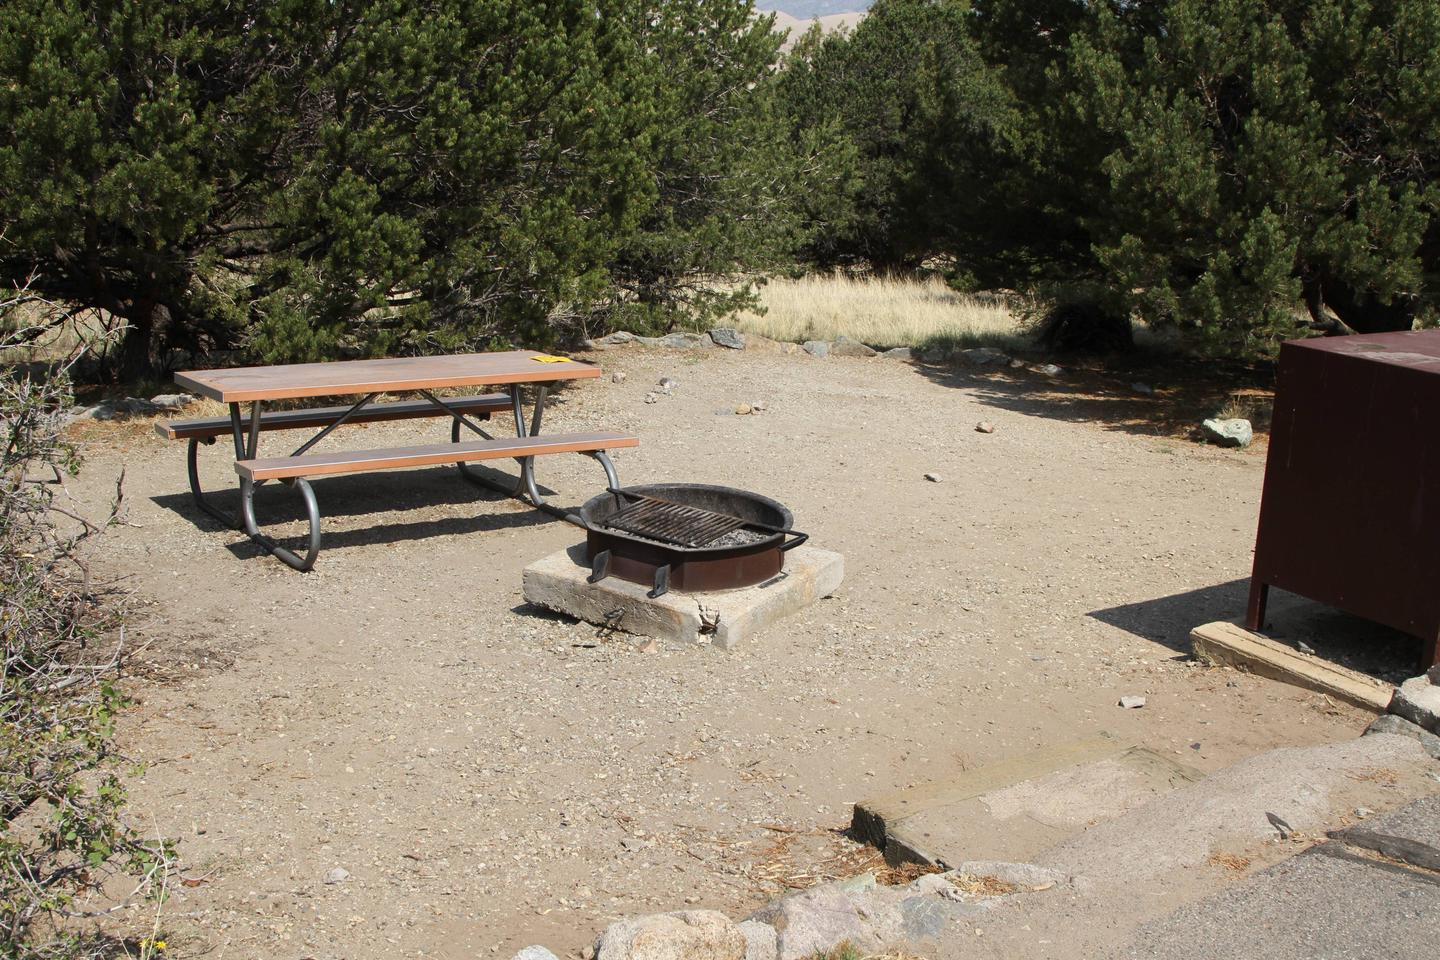 Closer view of Site #59 tent pad with bear box, fire ring, and picnic table.Site #59, Pinon Flats Campground